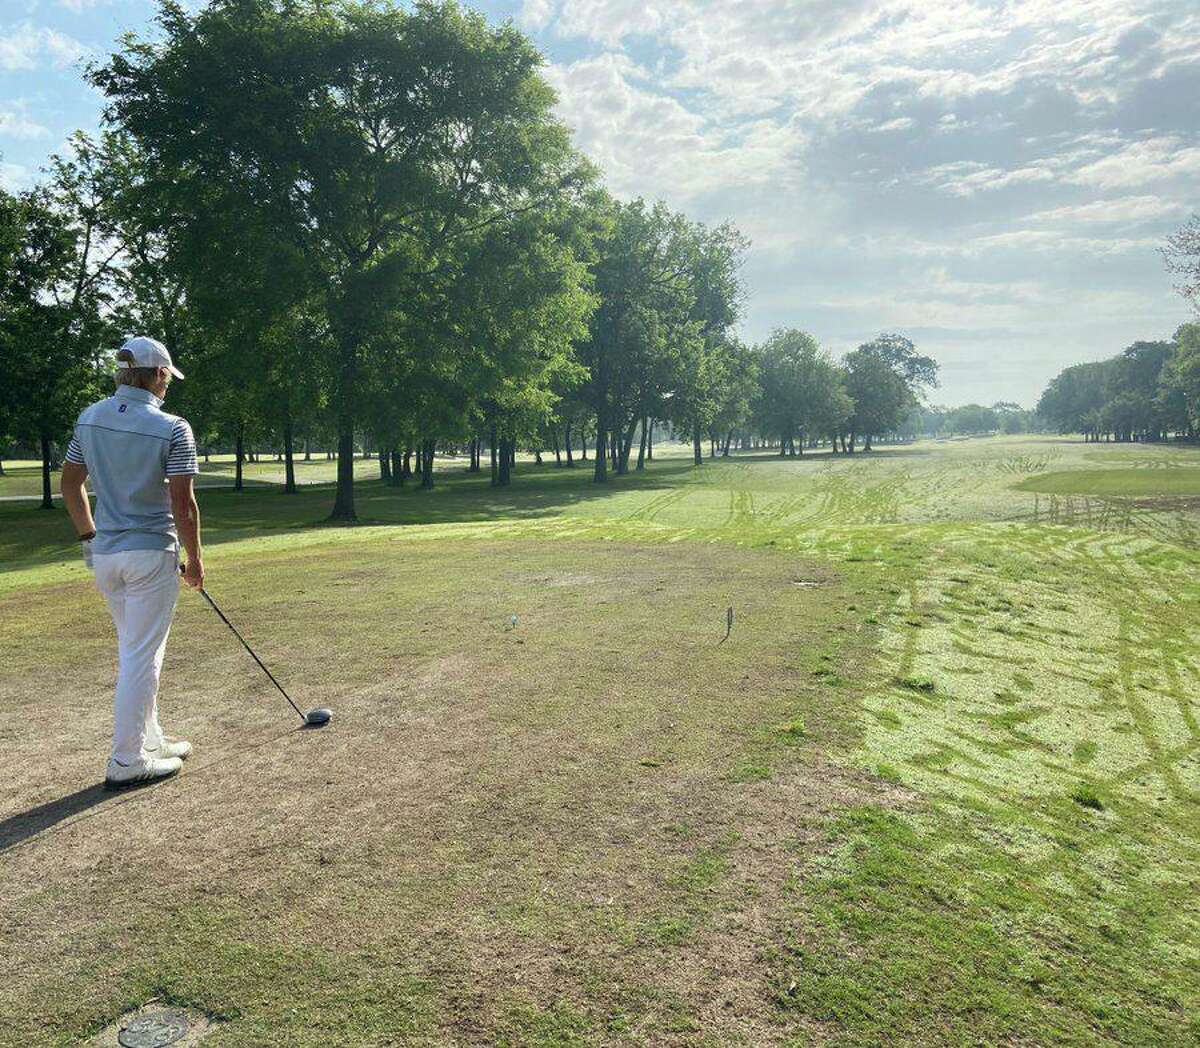 Tompkins junior Colt Tenpenny won the Region III-6A championship April 21-22 at Gleannloch Pines Golf Club, qualifying for the Class 6A state tournament while shooting the lowest scores in school history.